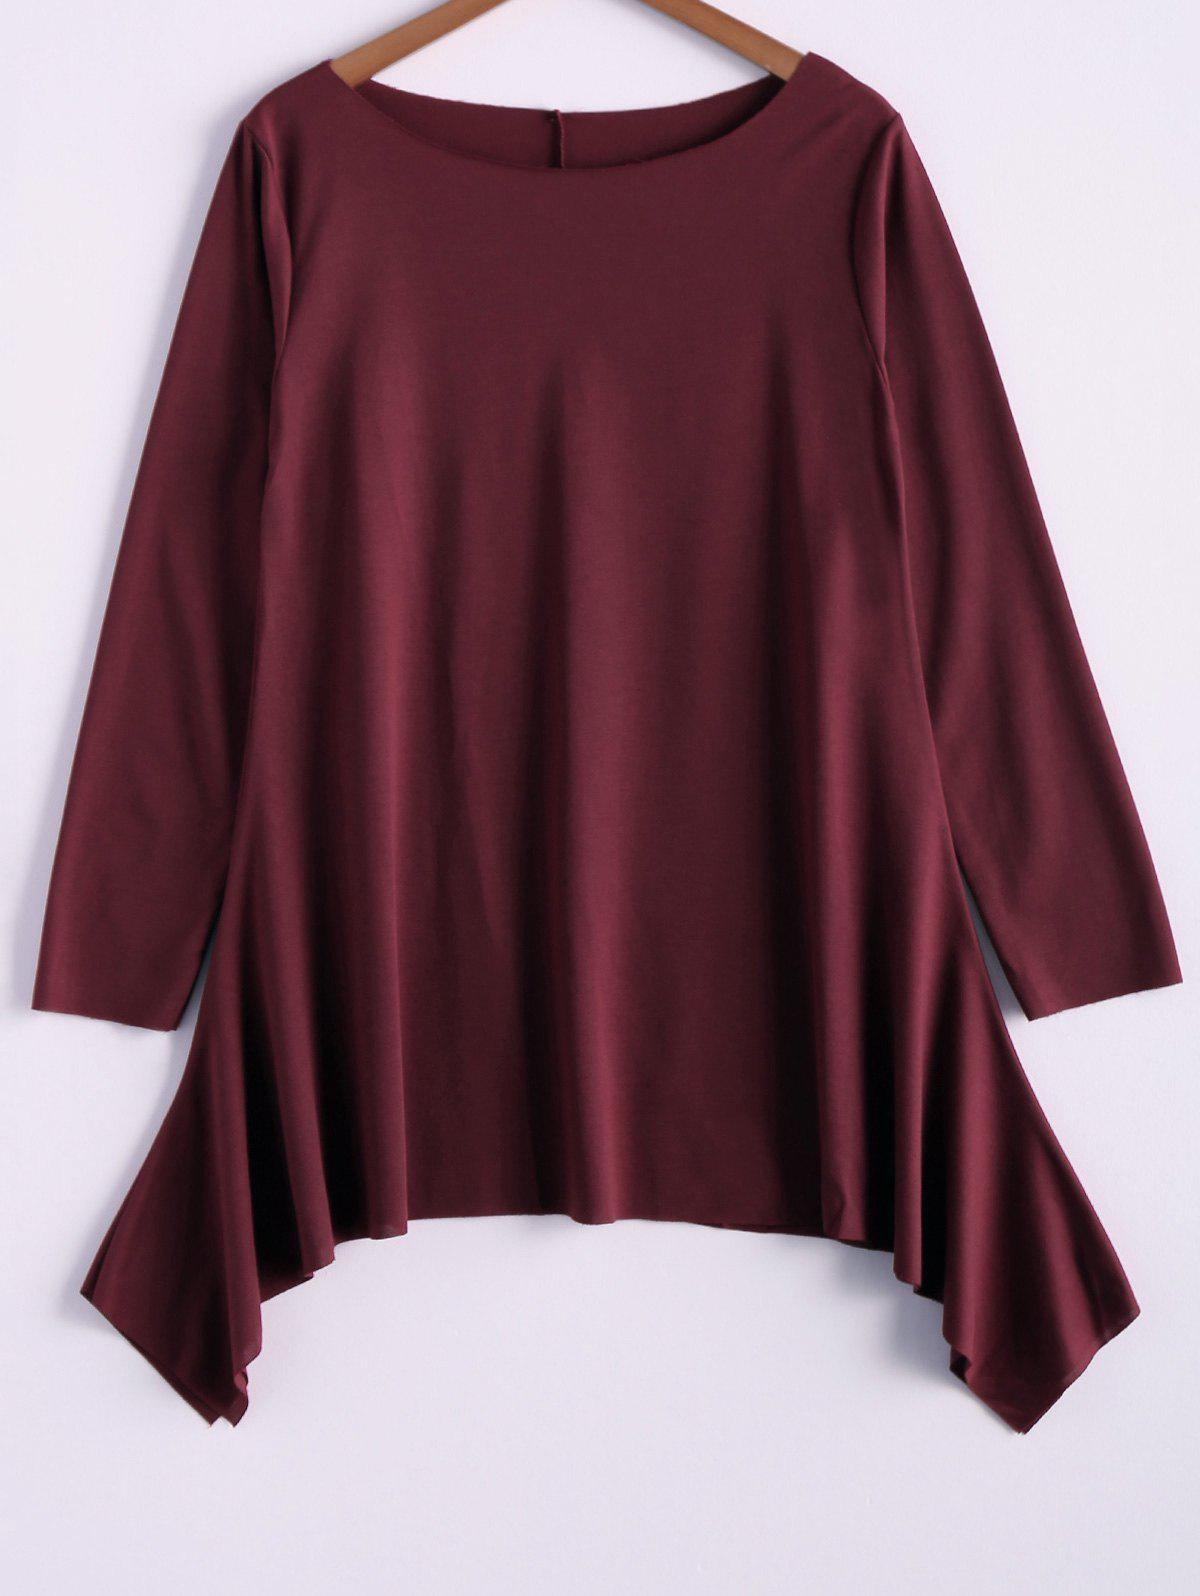 Unique Fashionable Skew Neck Loose-Fitting T-Shirt For Women